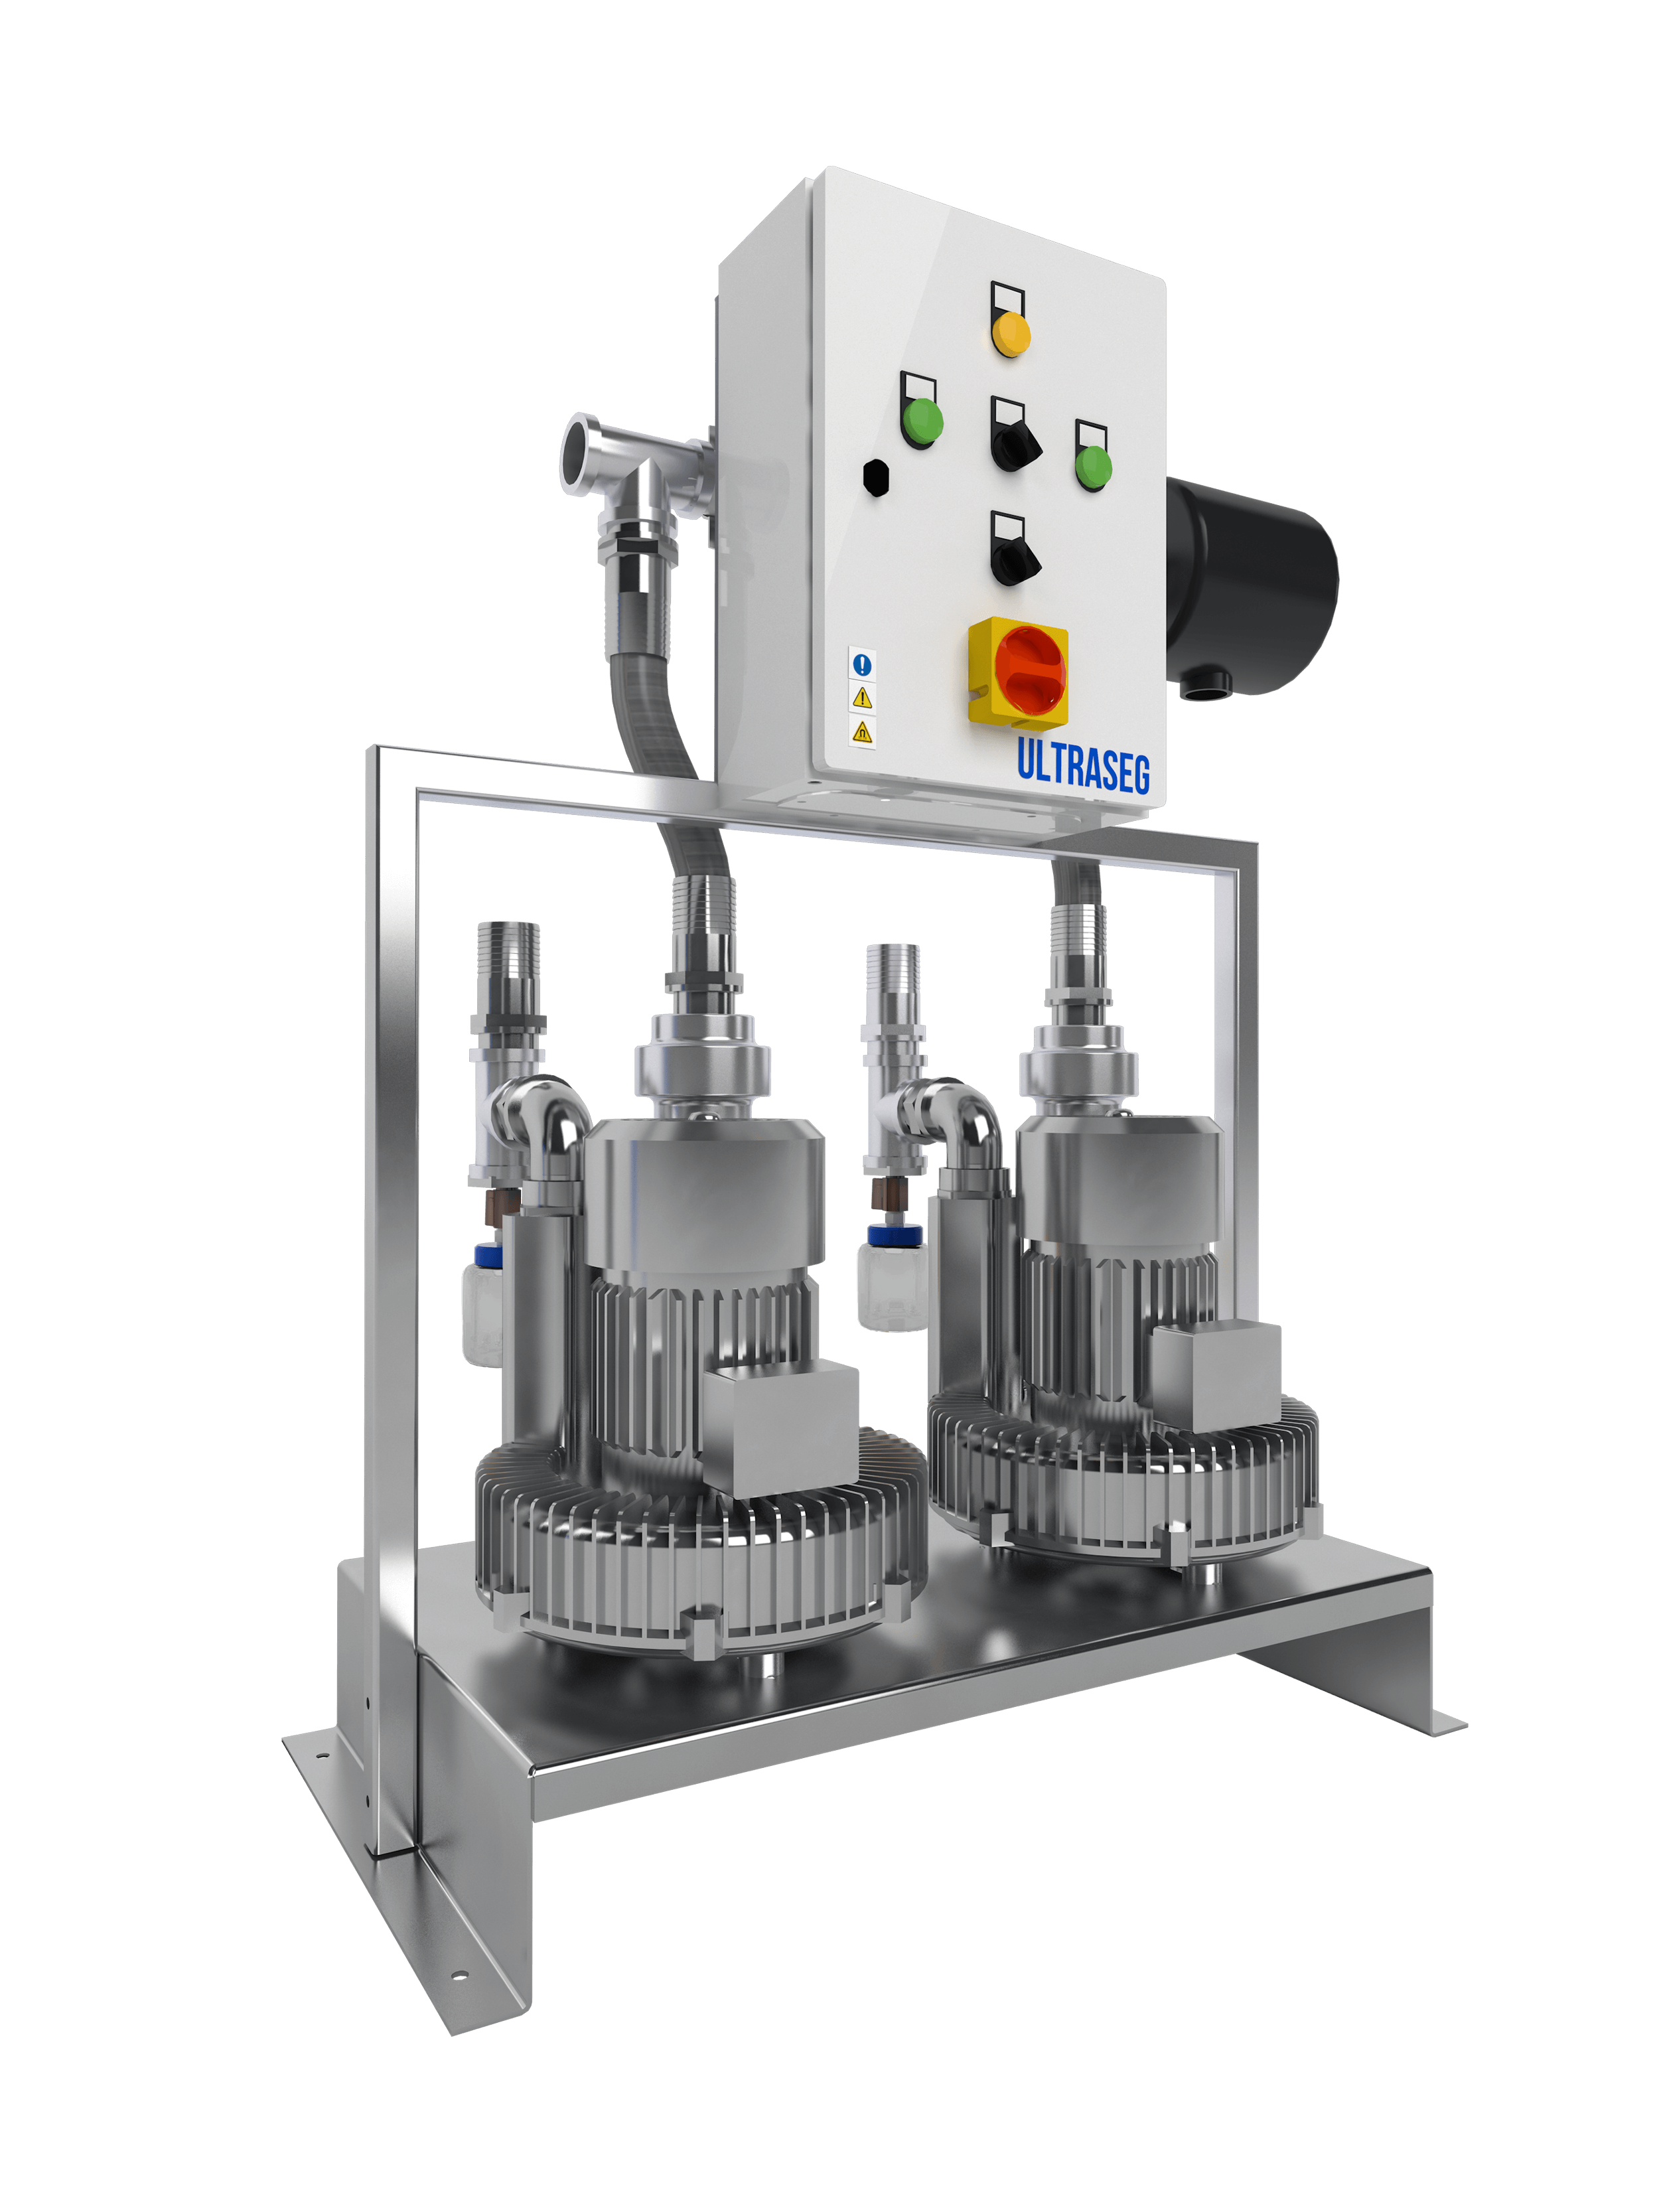 The Anaesthetic Gas Scavenging system is an active system based on the suction of anesthetic gas mixtures from operating rooms and others fitted with nitrous oxide terminal units.